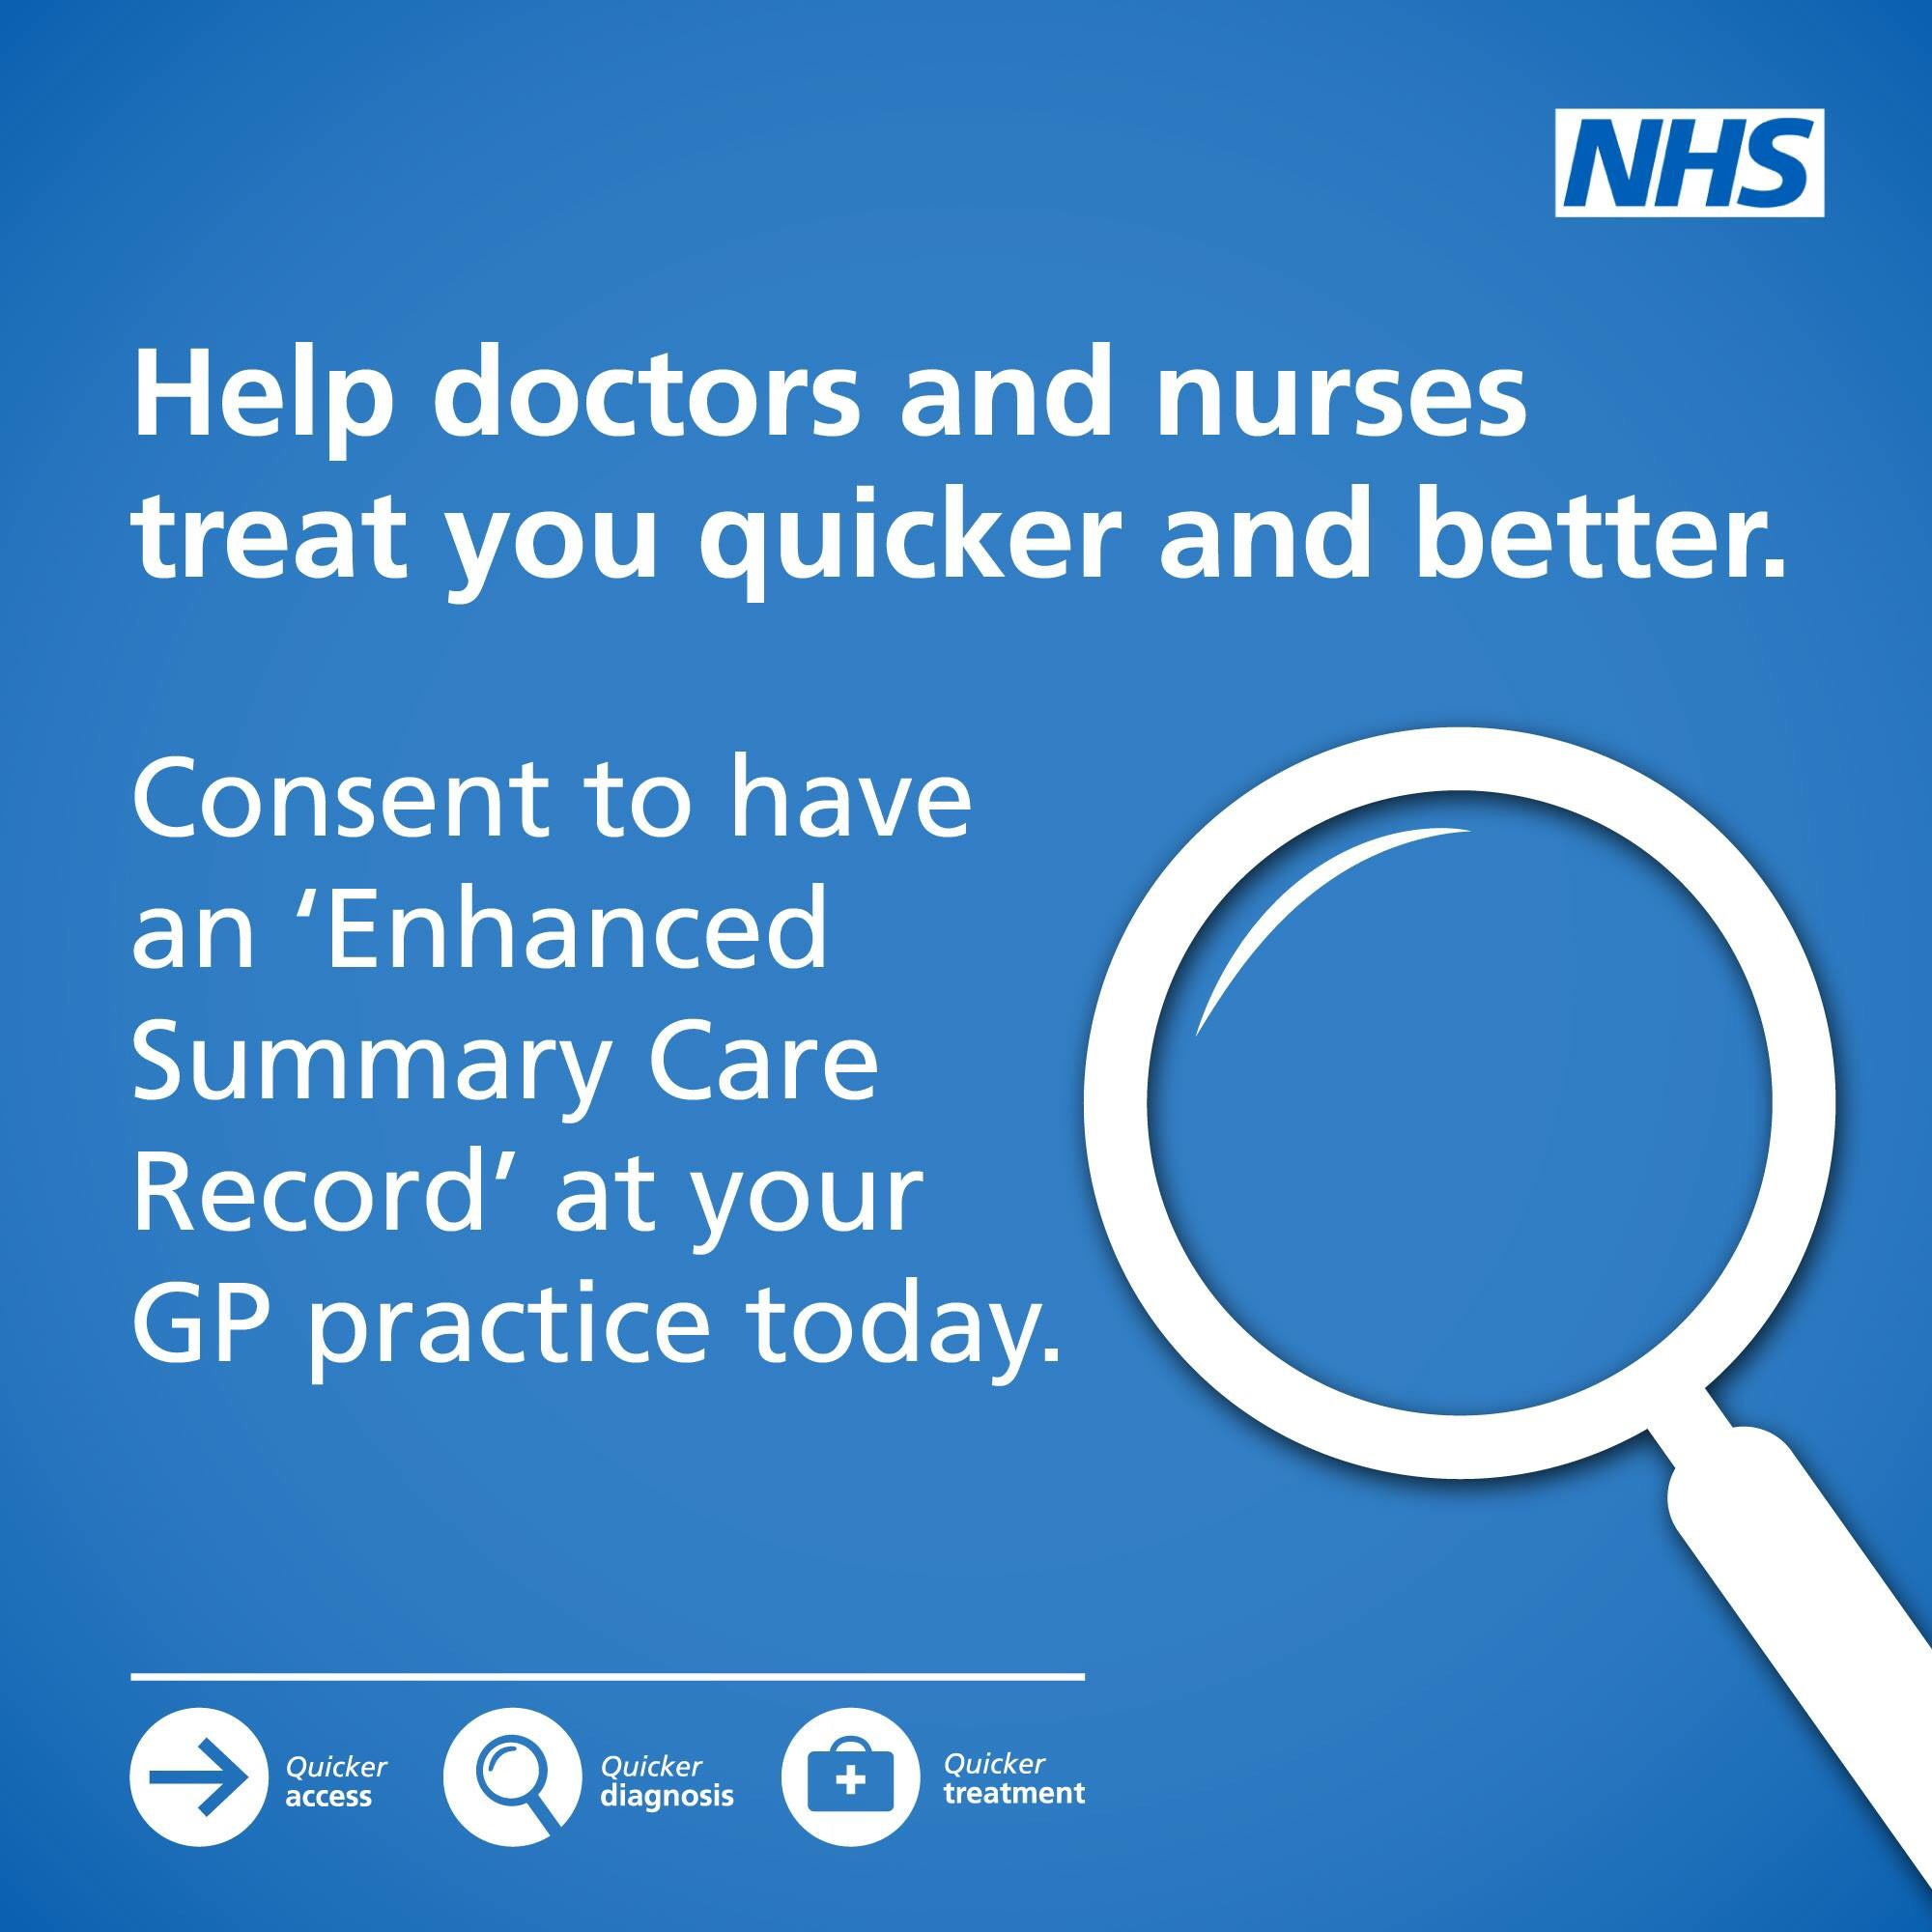 Enhanced Summary Care Record